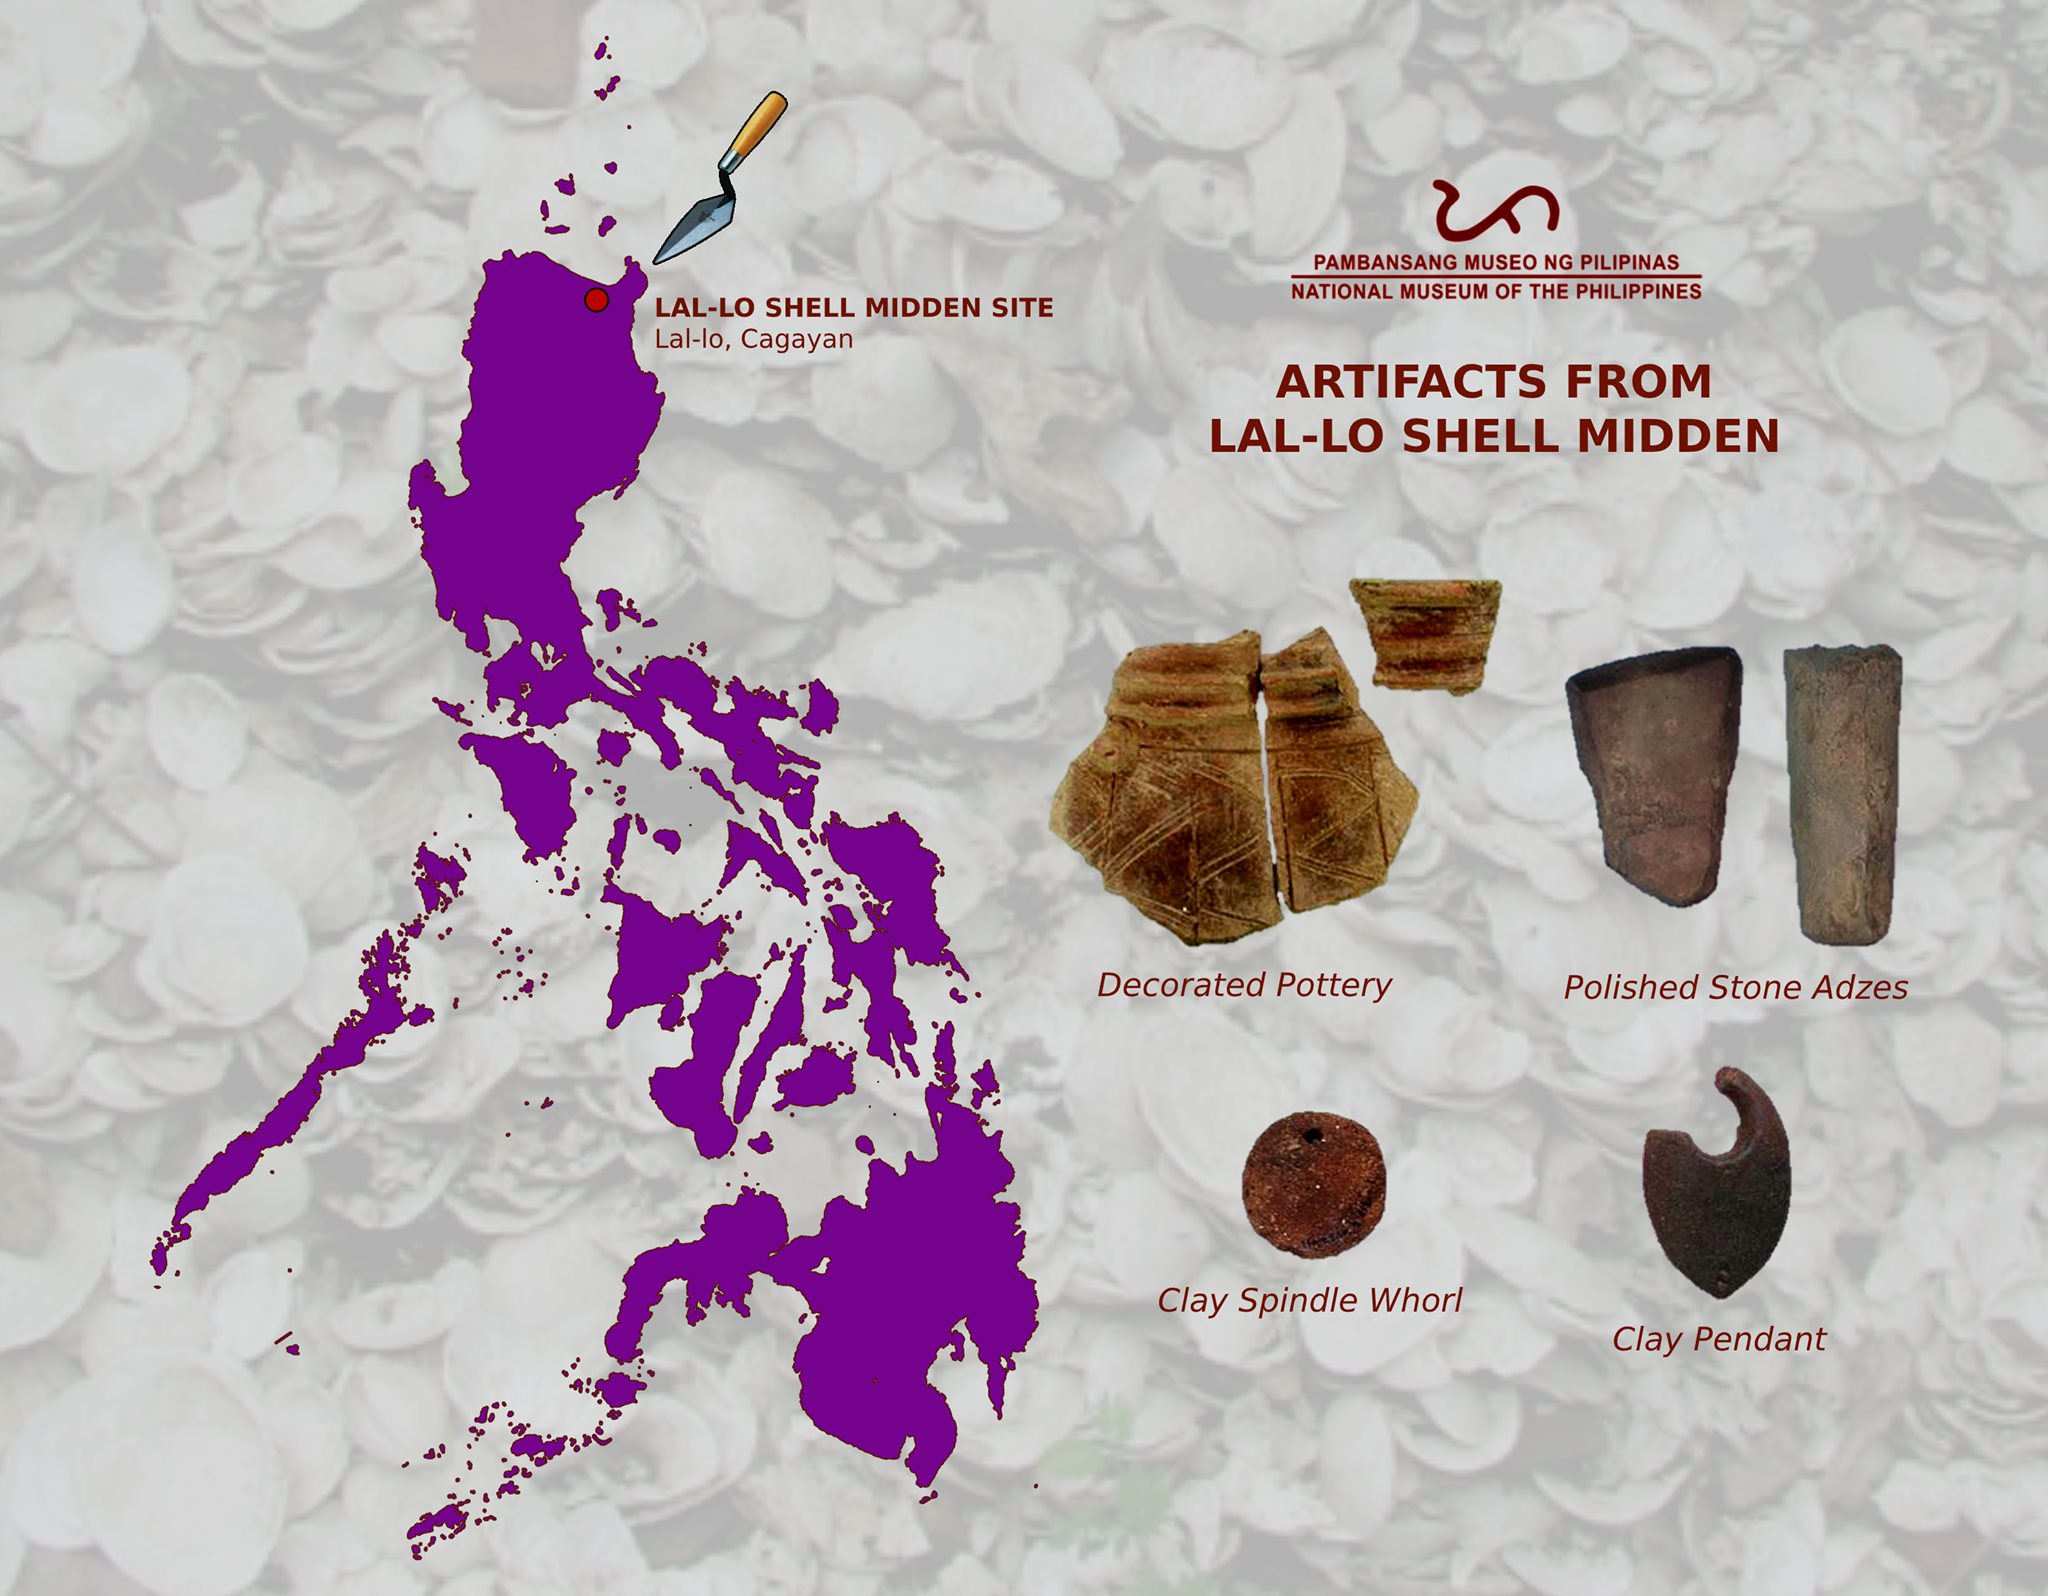 Archeology: Shell Midden Sites in the Municipality of Lal-lo, Cagayan